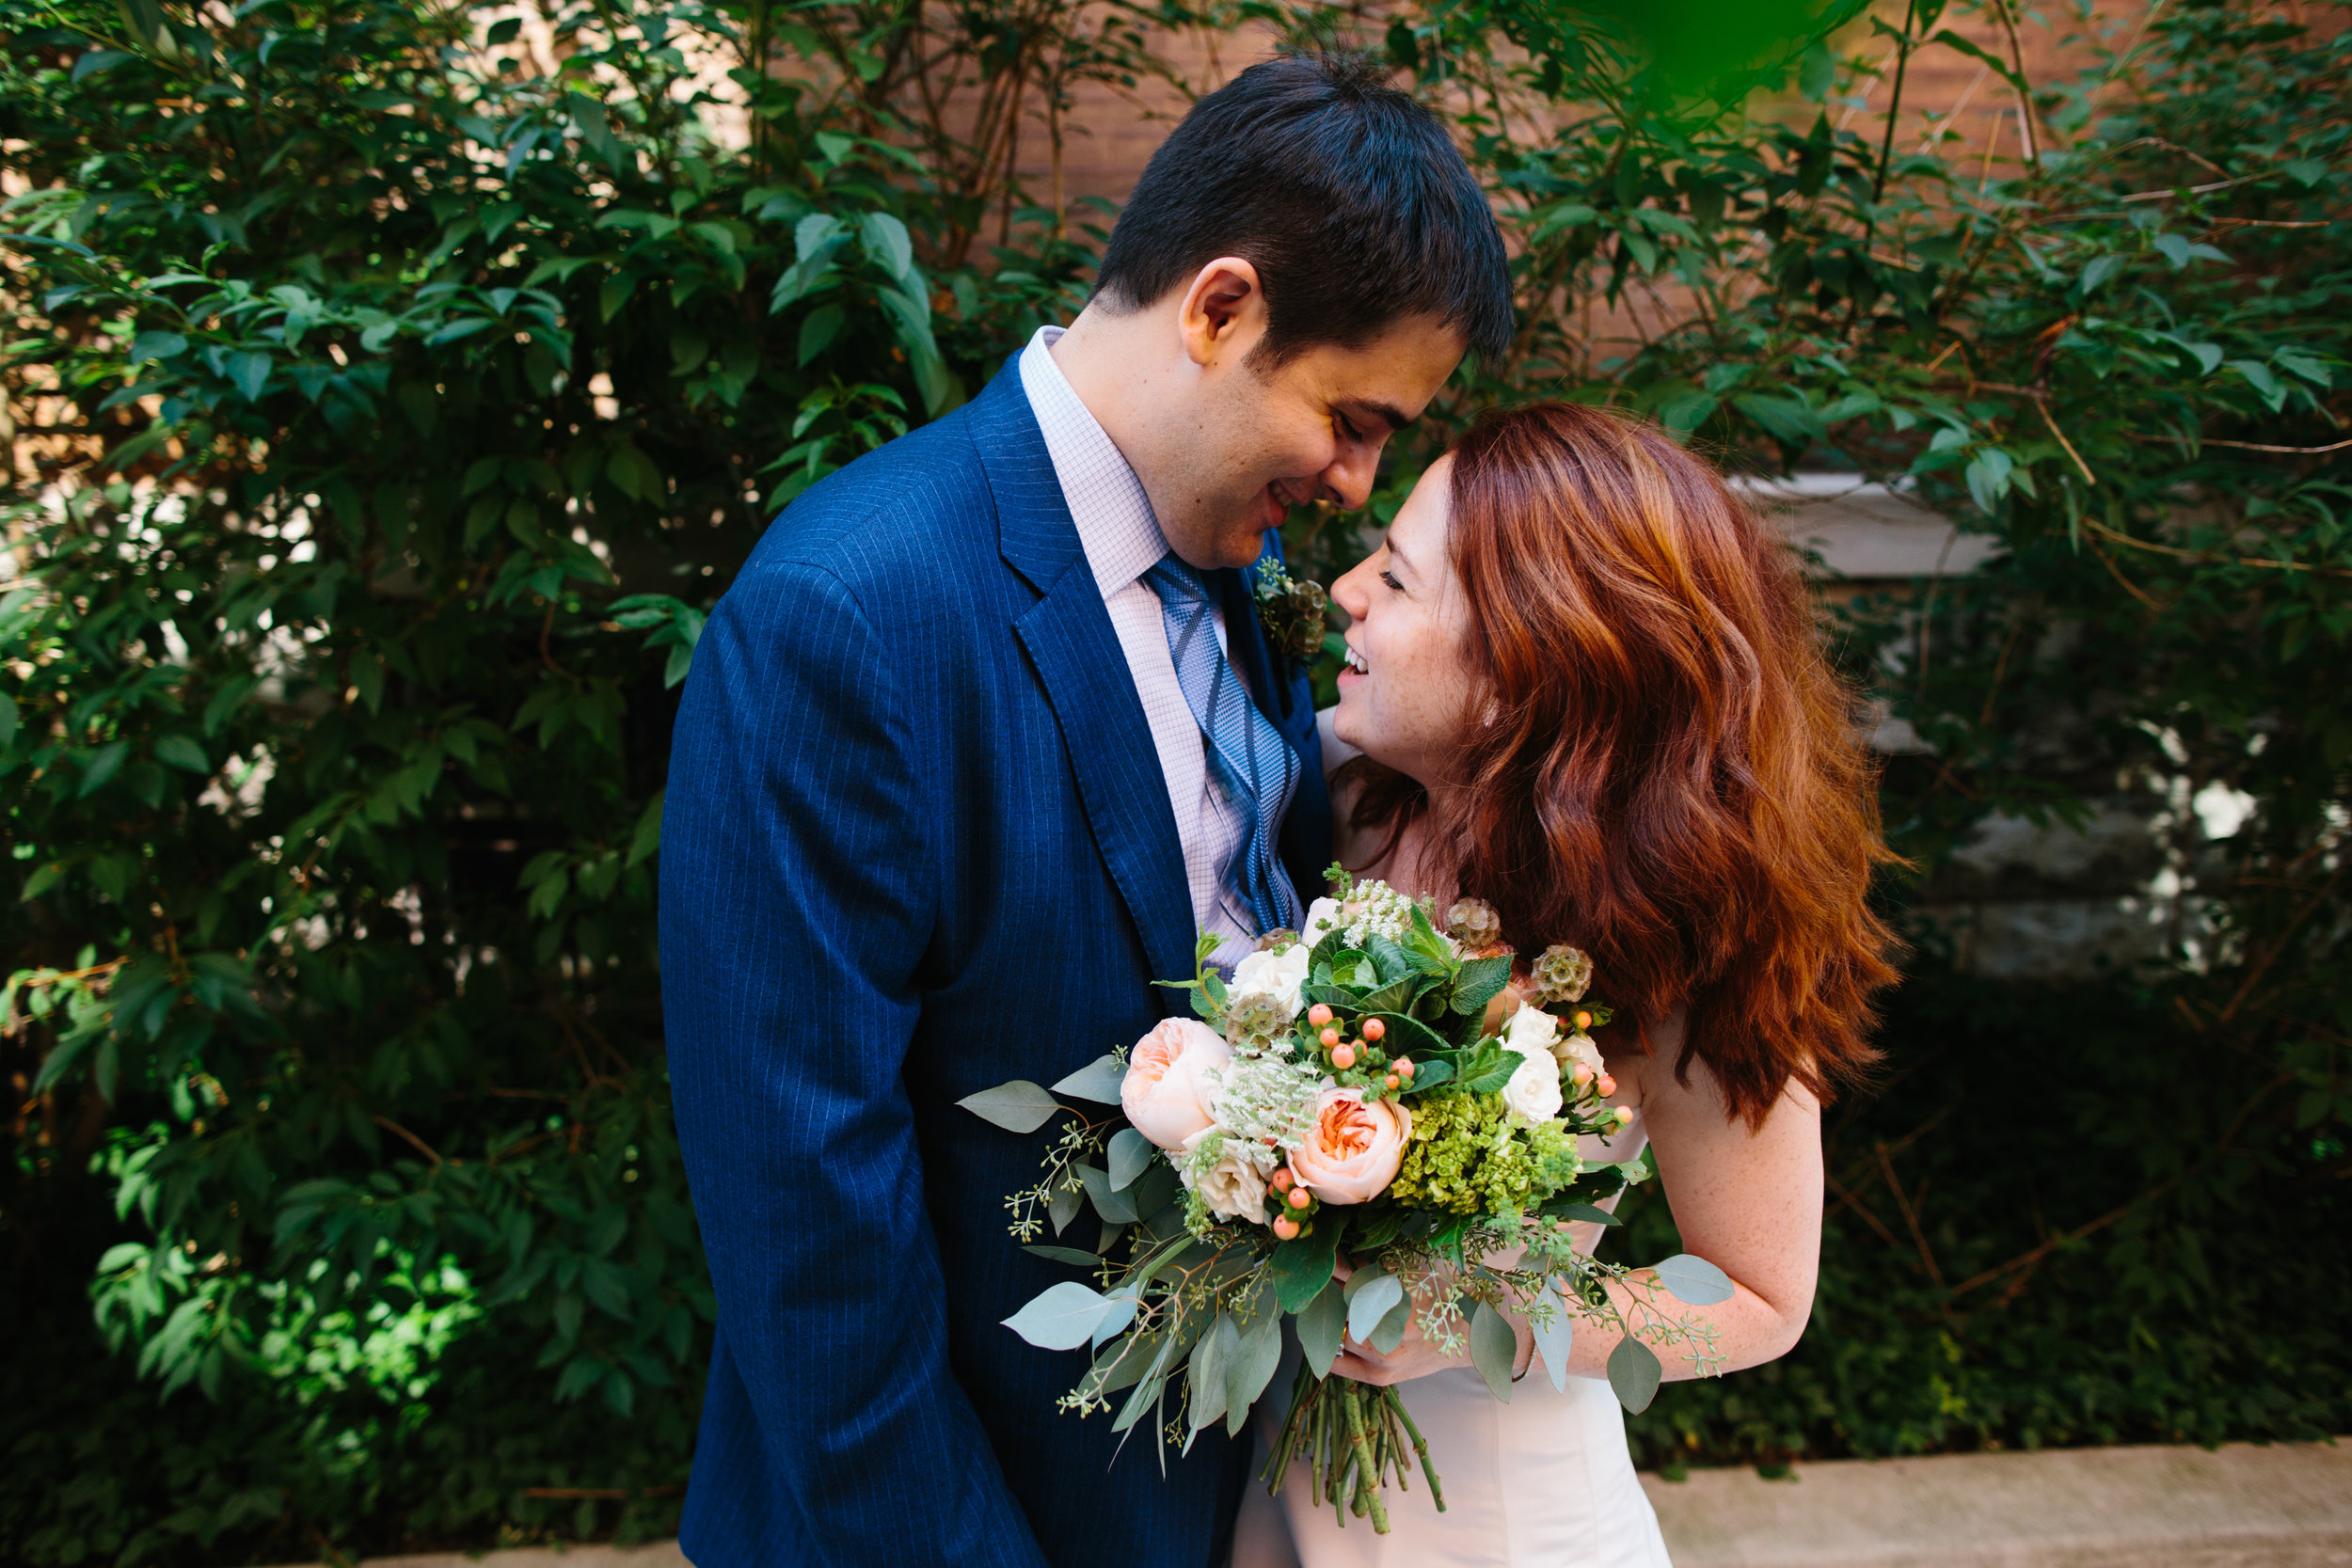 Helena & Cole - Chicago, ILVenue: The PublicanPhotographer: Matt HaasVibe: CasualWhat was the best part of your wedding? The food made everyone relaxed and happy.